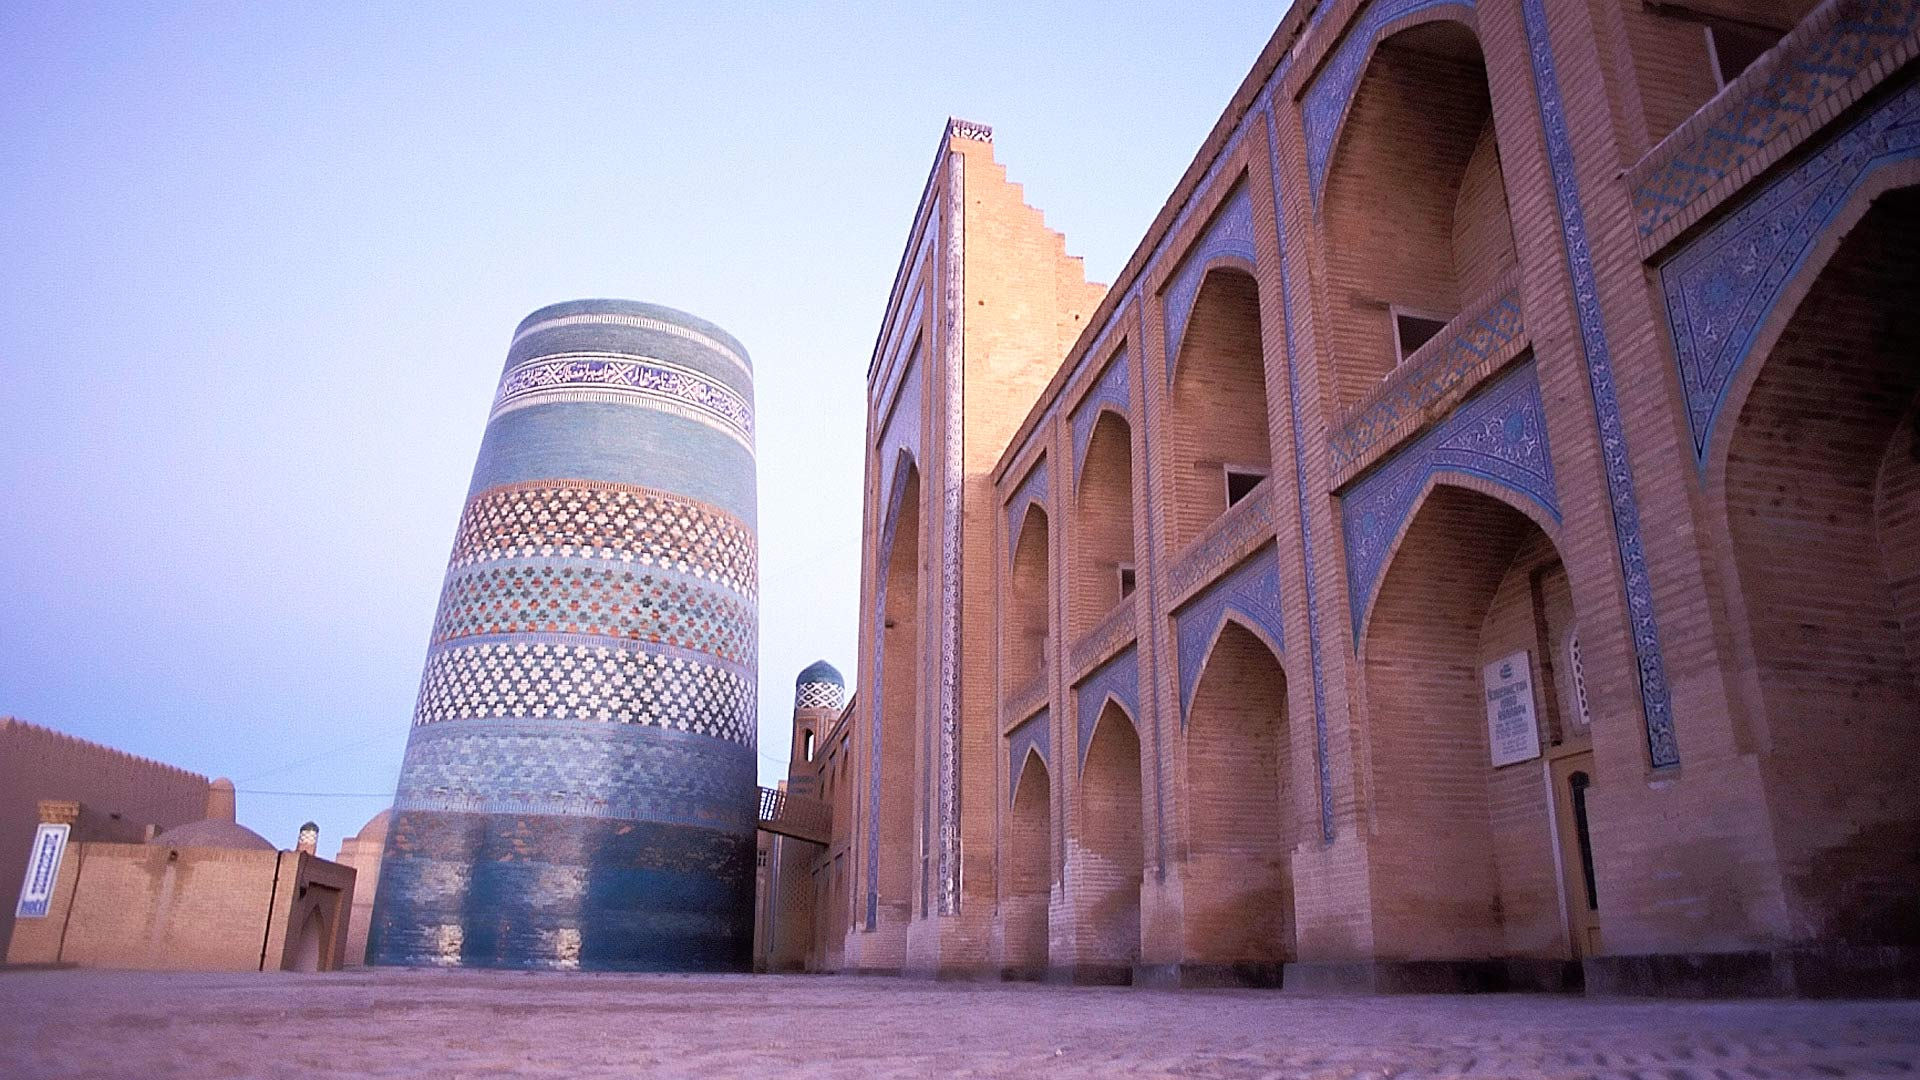 Kalta-Minor Minaret and Muhammad Amin Khan Medressa at dusk, Khiva, Khorezm, Uzbekistan